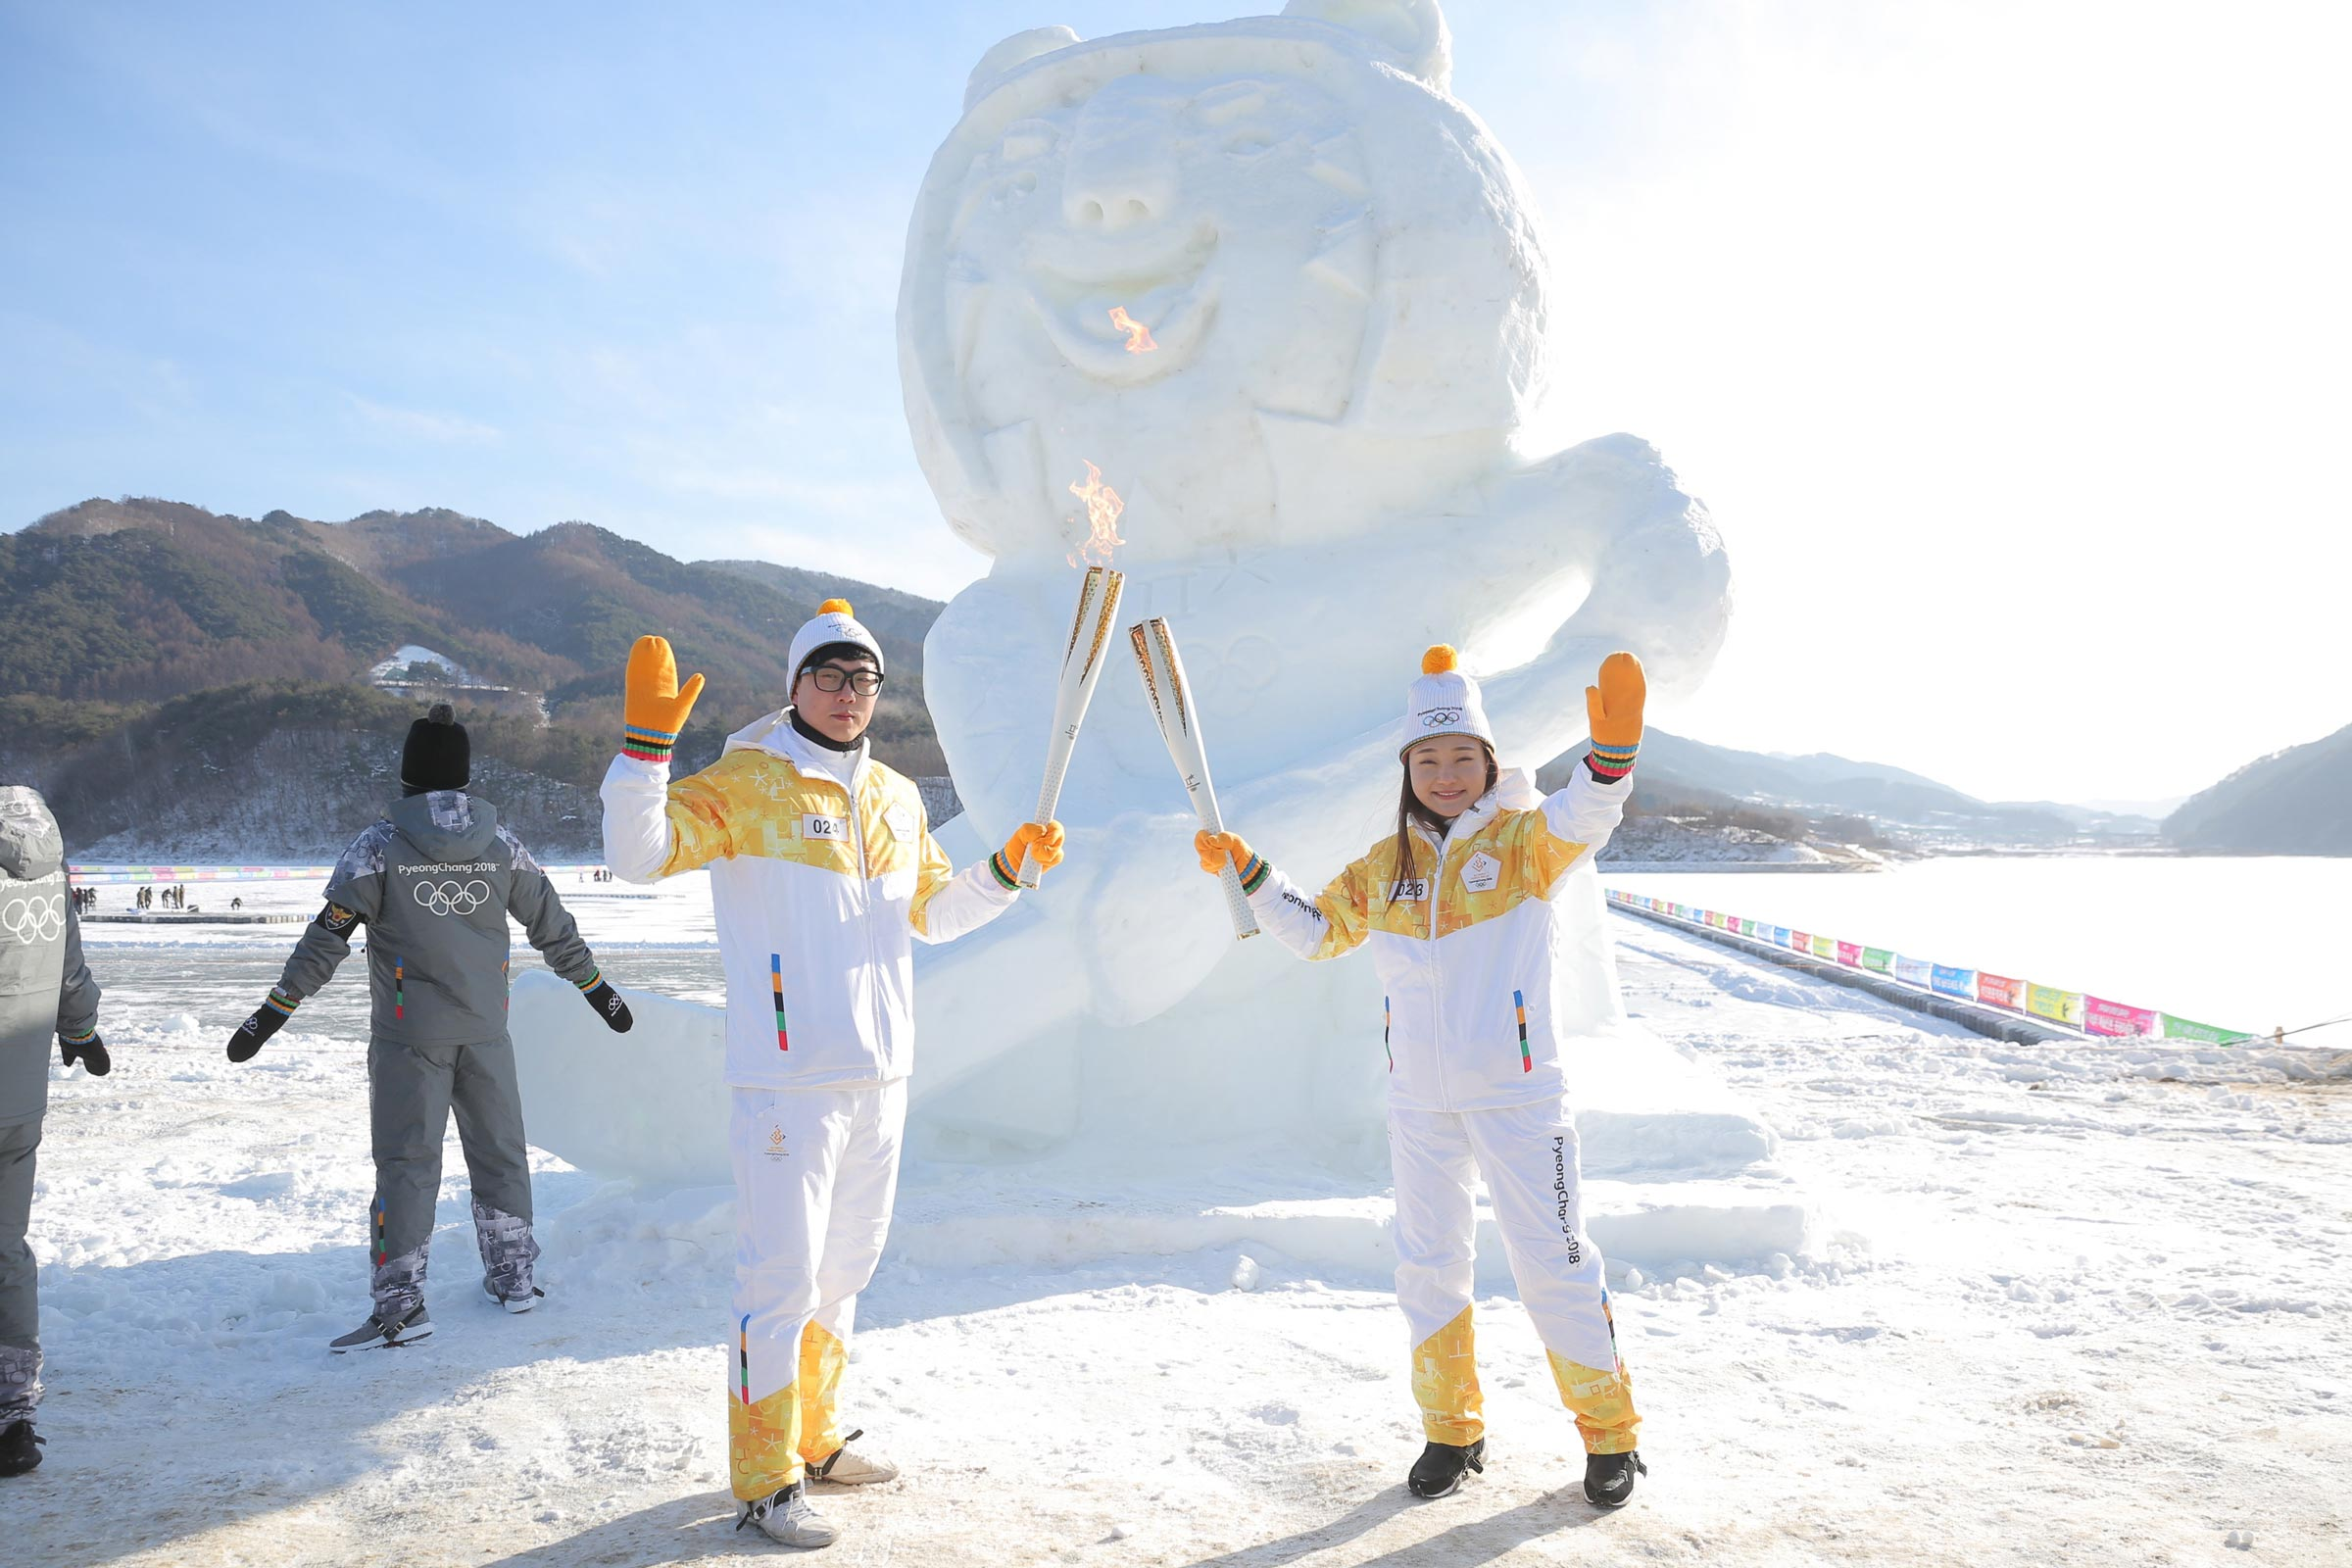 PyeongChang 2018 Olympic Torch Relay - Day 86